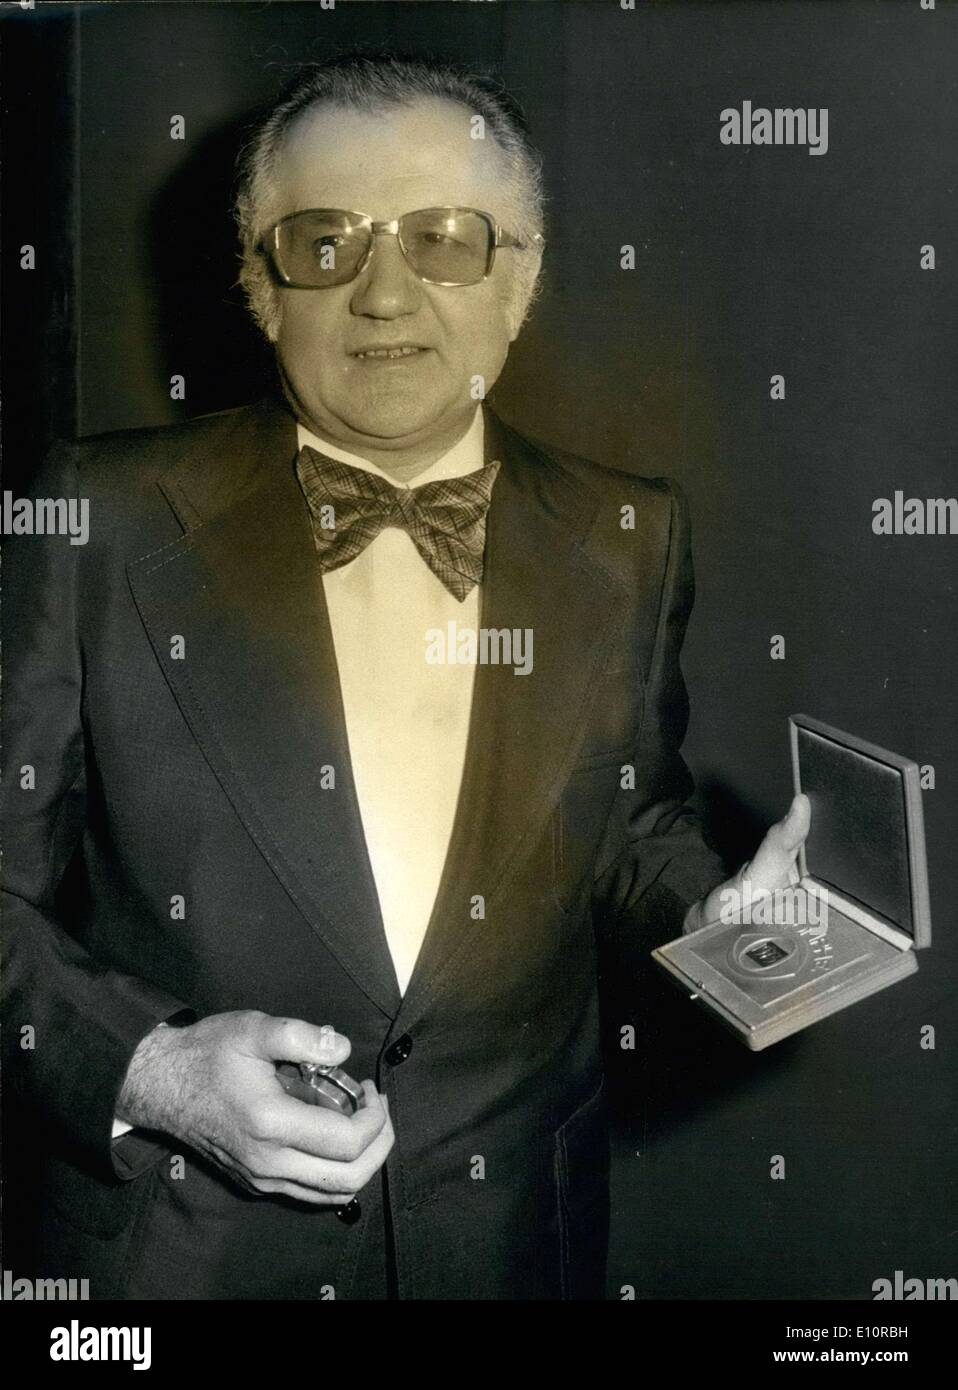 Dec. 14, 1973 - Jean Richard presents the ''Triumph Prize'' that he received for his TV programs at the 20th Paris Theater Festival that was put on by Pierre Louis, Jaqueline Duforest, and Jacques Hetier. It was organized to benefit cinema-supported social work. - Stock Image